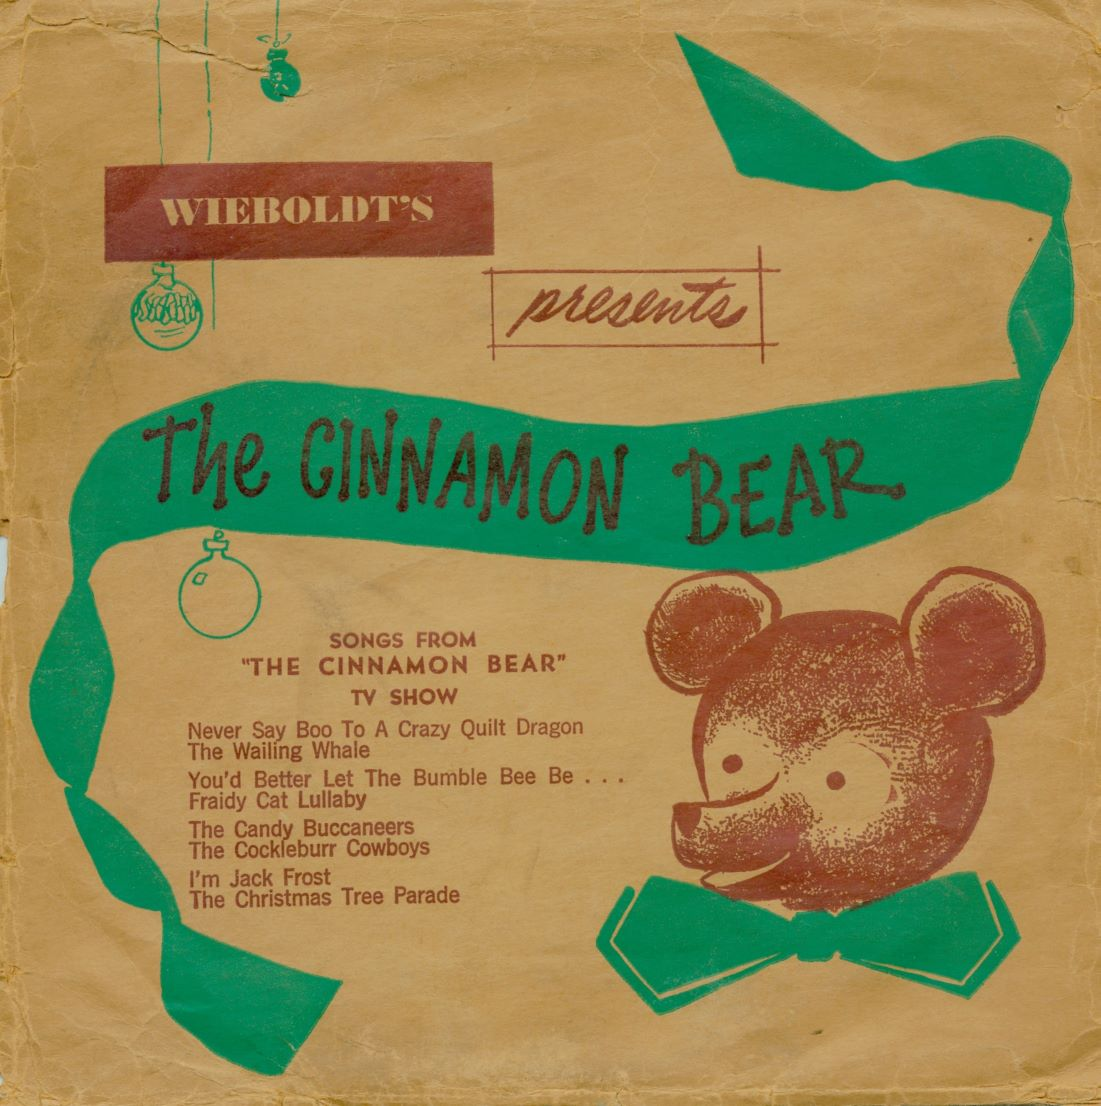 http://www.radioarchives.com/v/vspfiles/assets/images/pictures/Cinnamon%20Bear/23639A.jpg